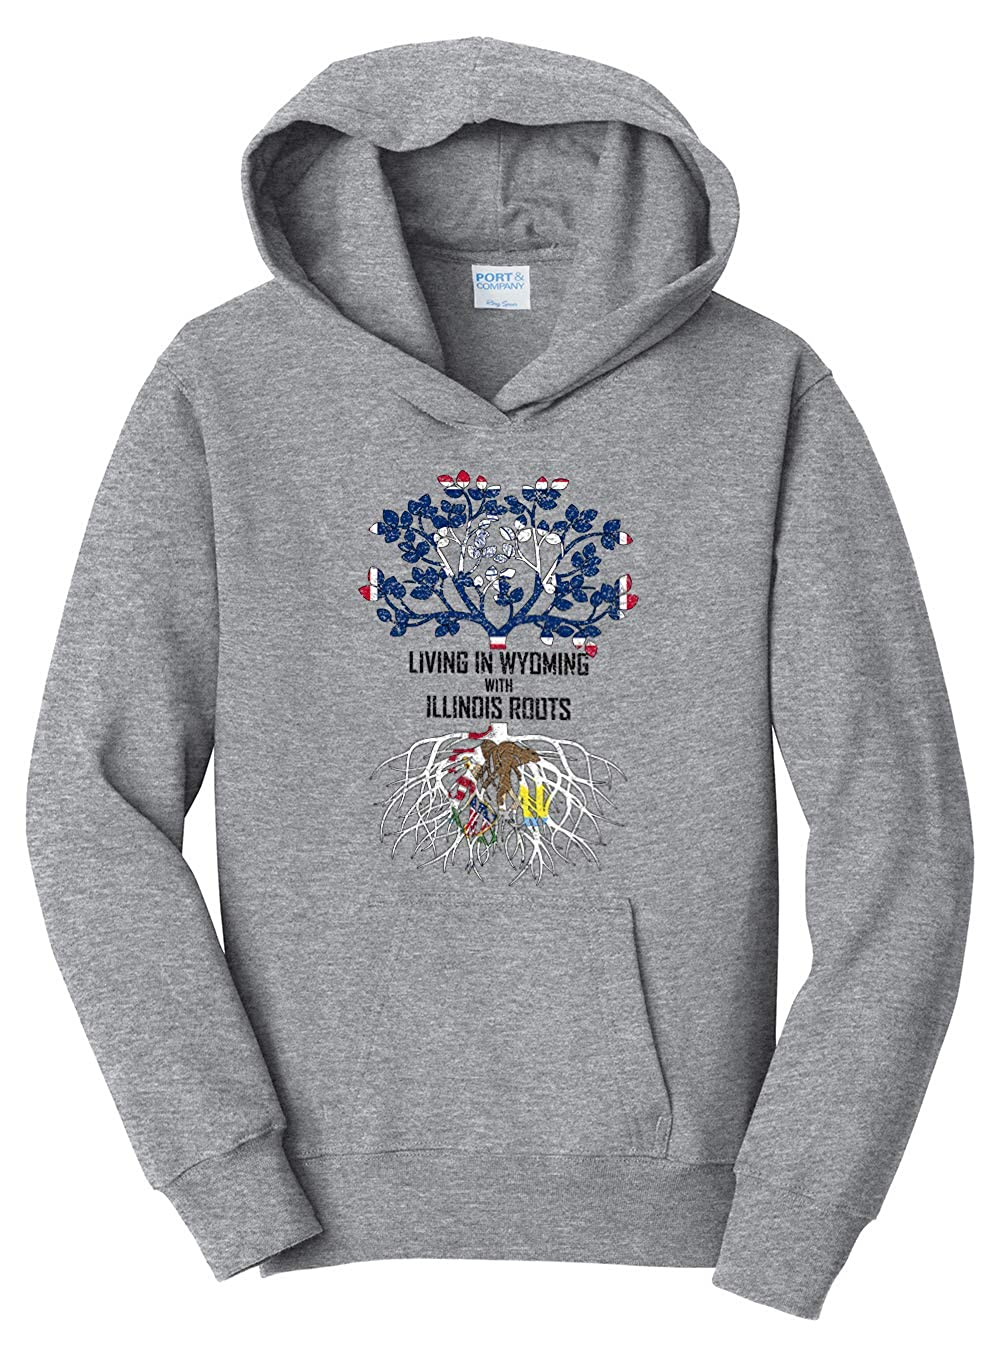 Tenacitee Girls Living in Wyoming with Illinois Roots Hooded Sweatshirt